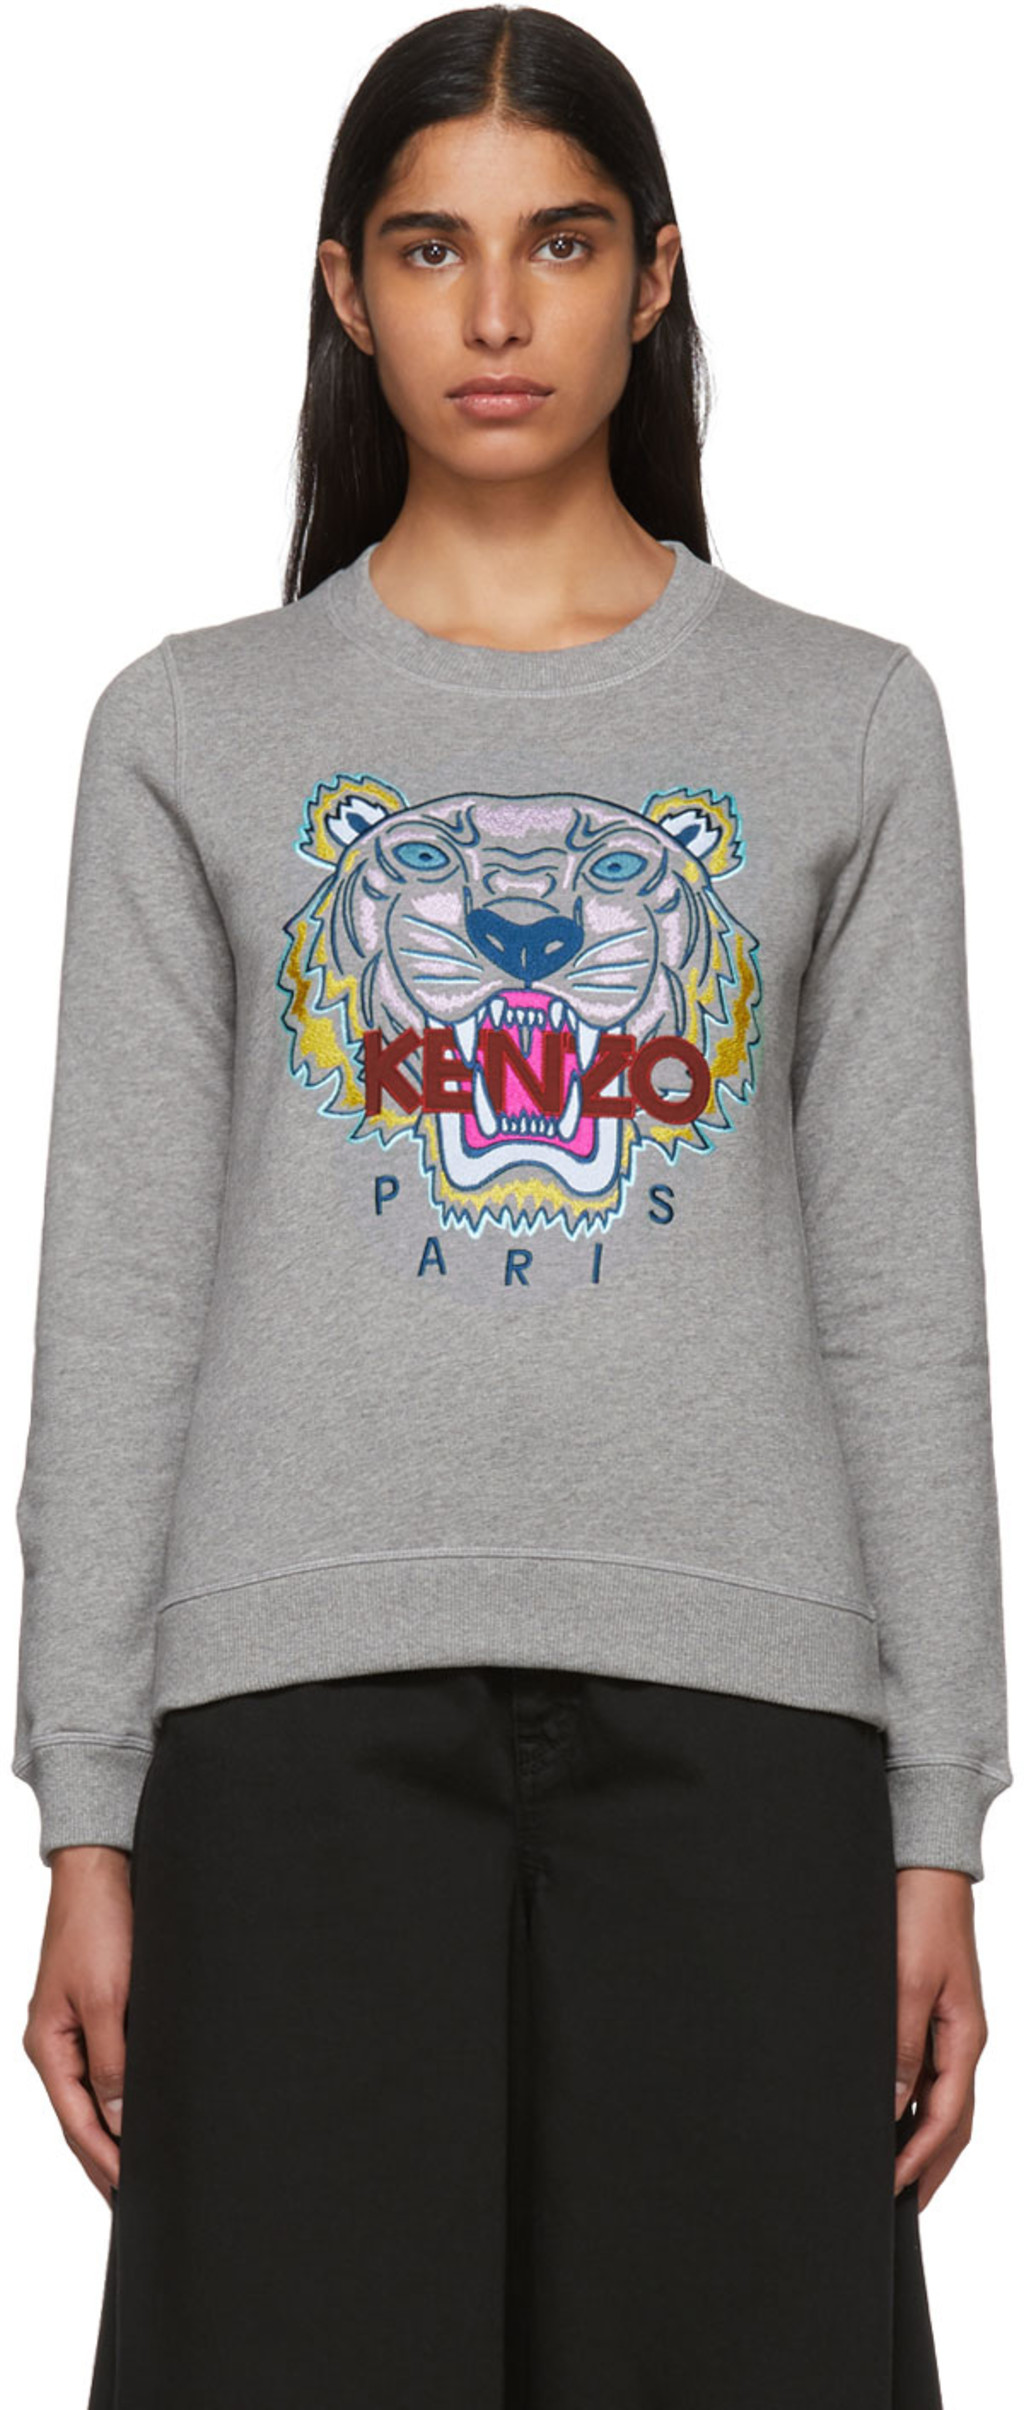 Kenzo For Women Fw18 Collection Ssense Baju Overall Mqueen